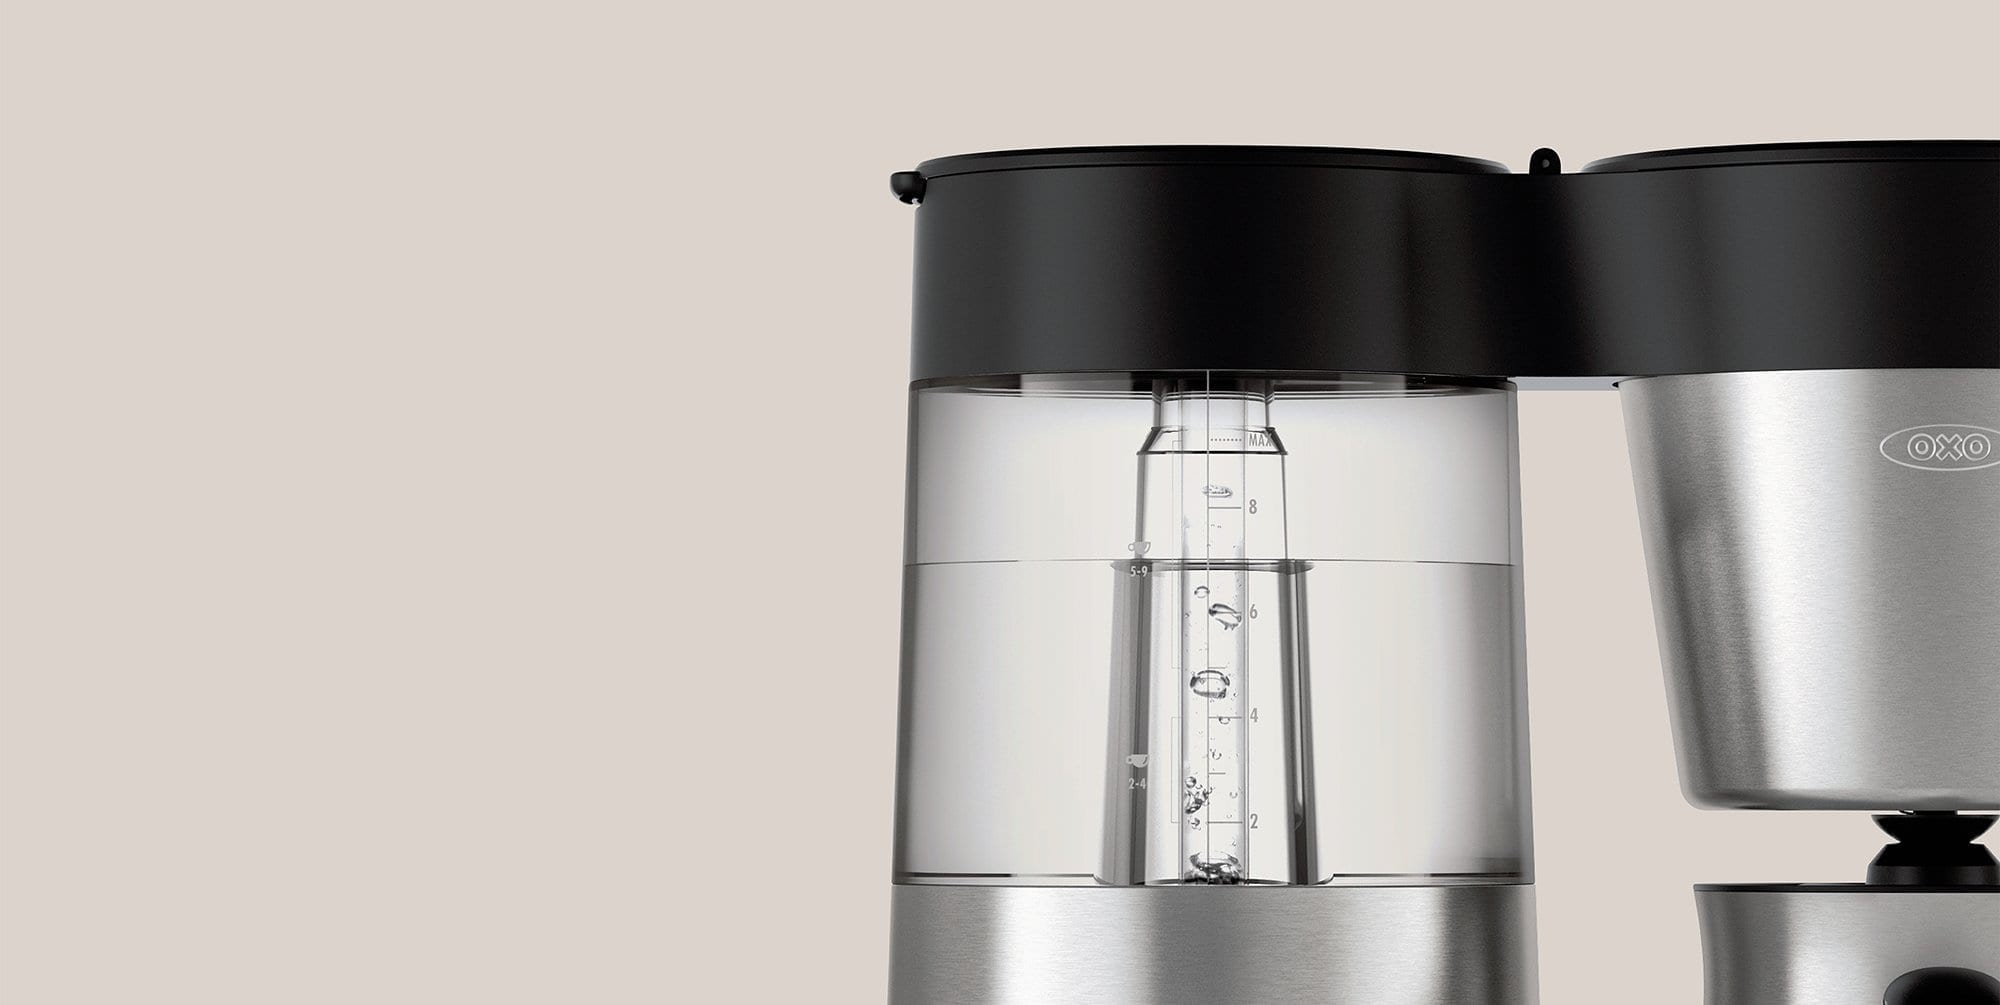 Oxo Barista Brain Brewer